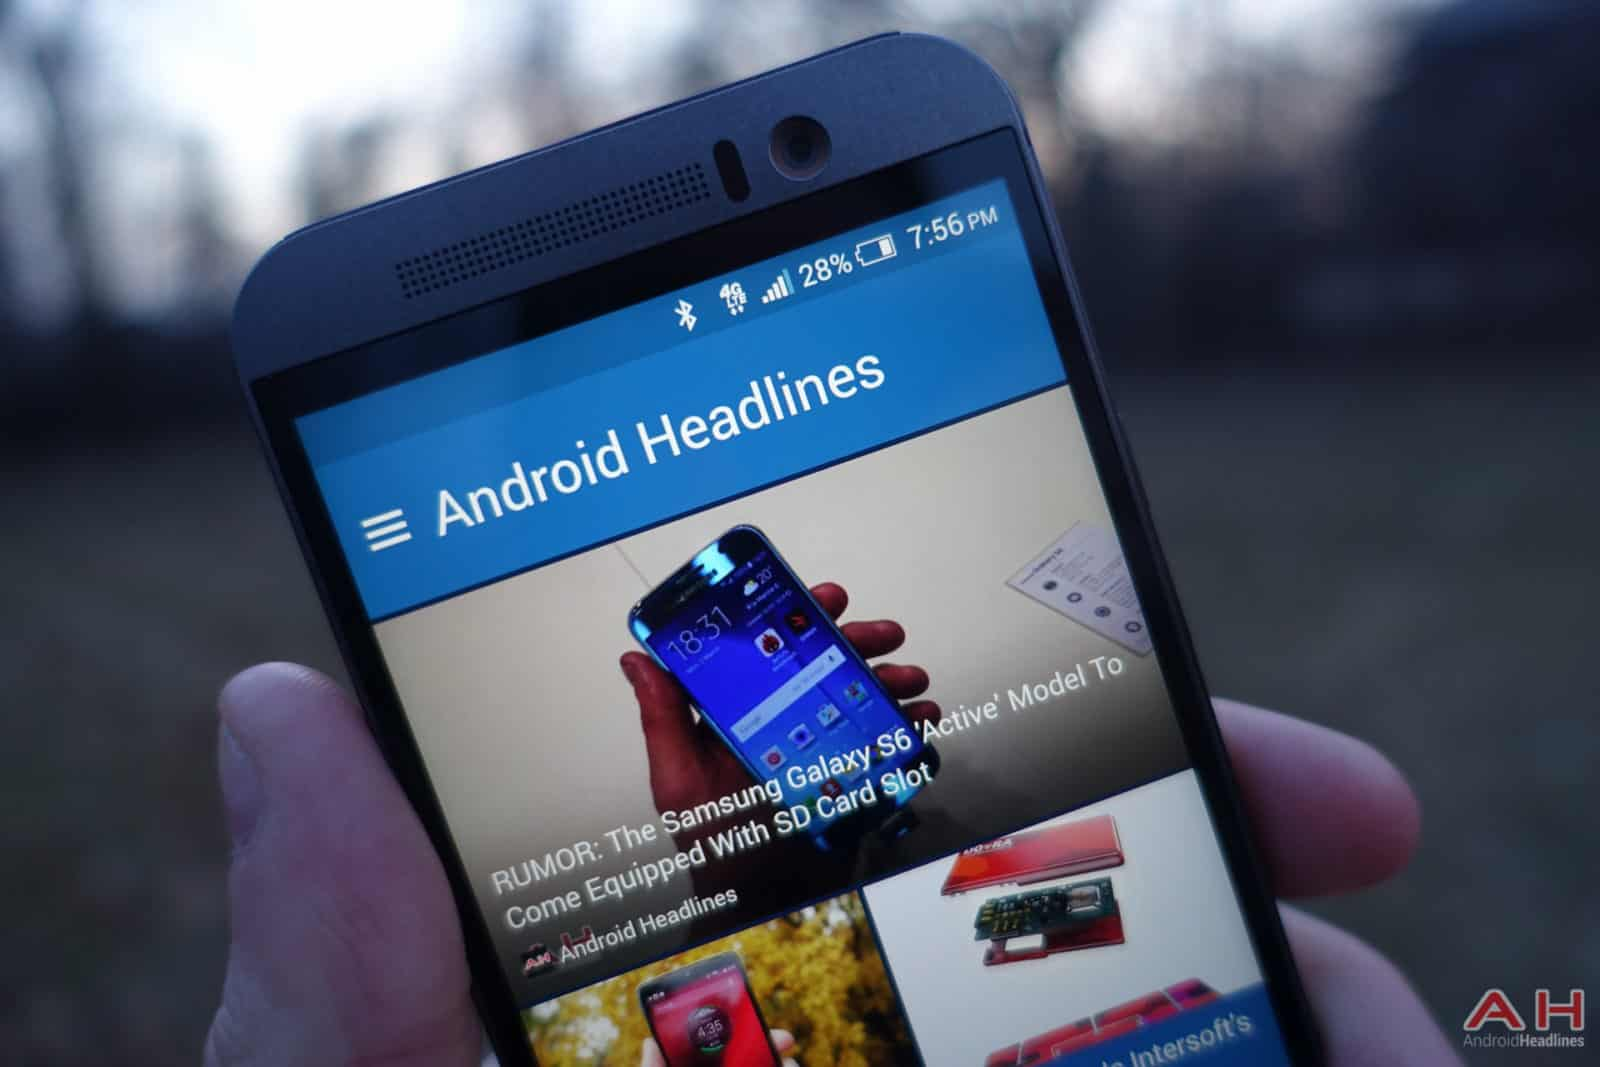 HTC-One-M9-Review-AH-22